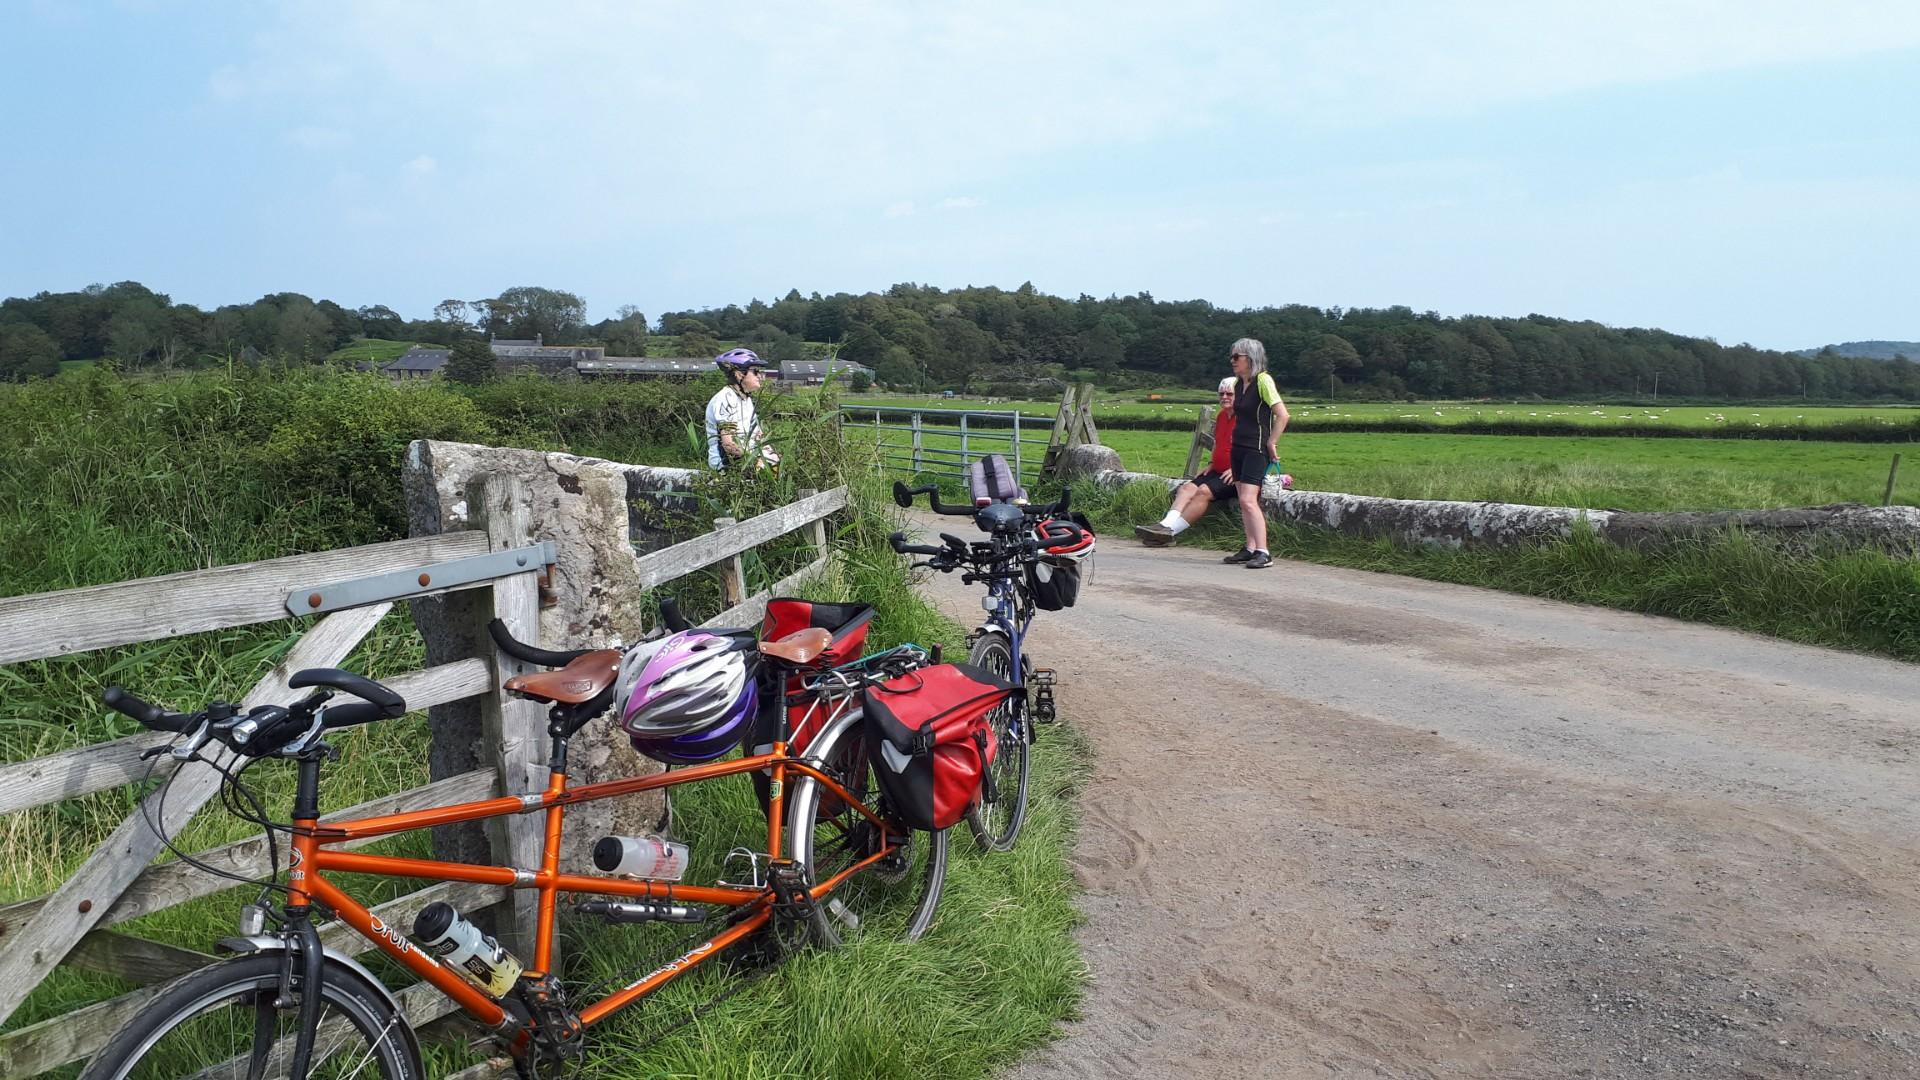 Cumbria Team - Lunch stop on Meathop Marsh